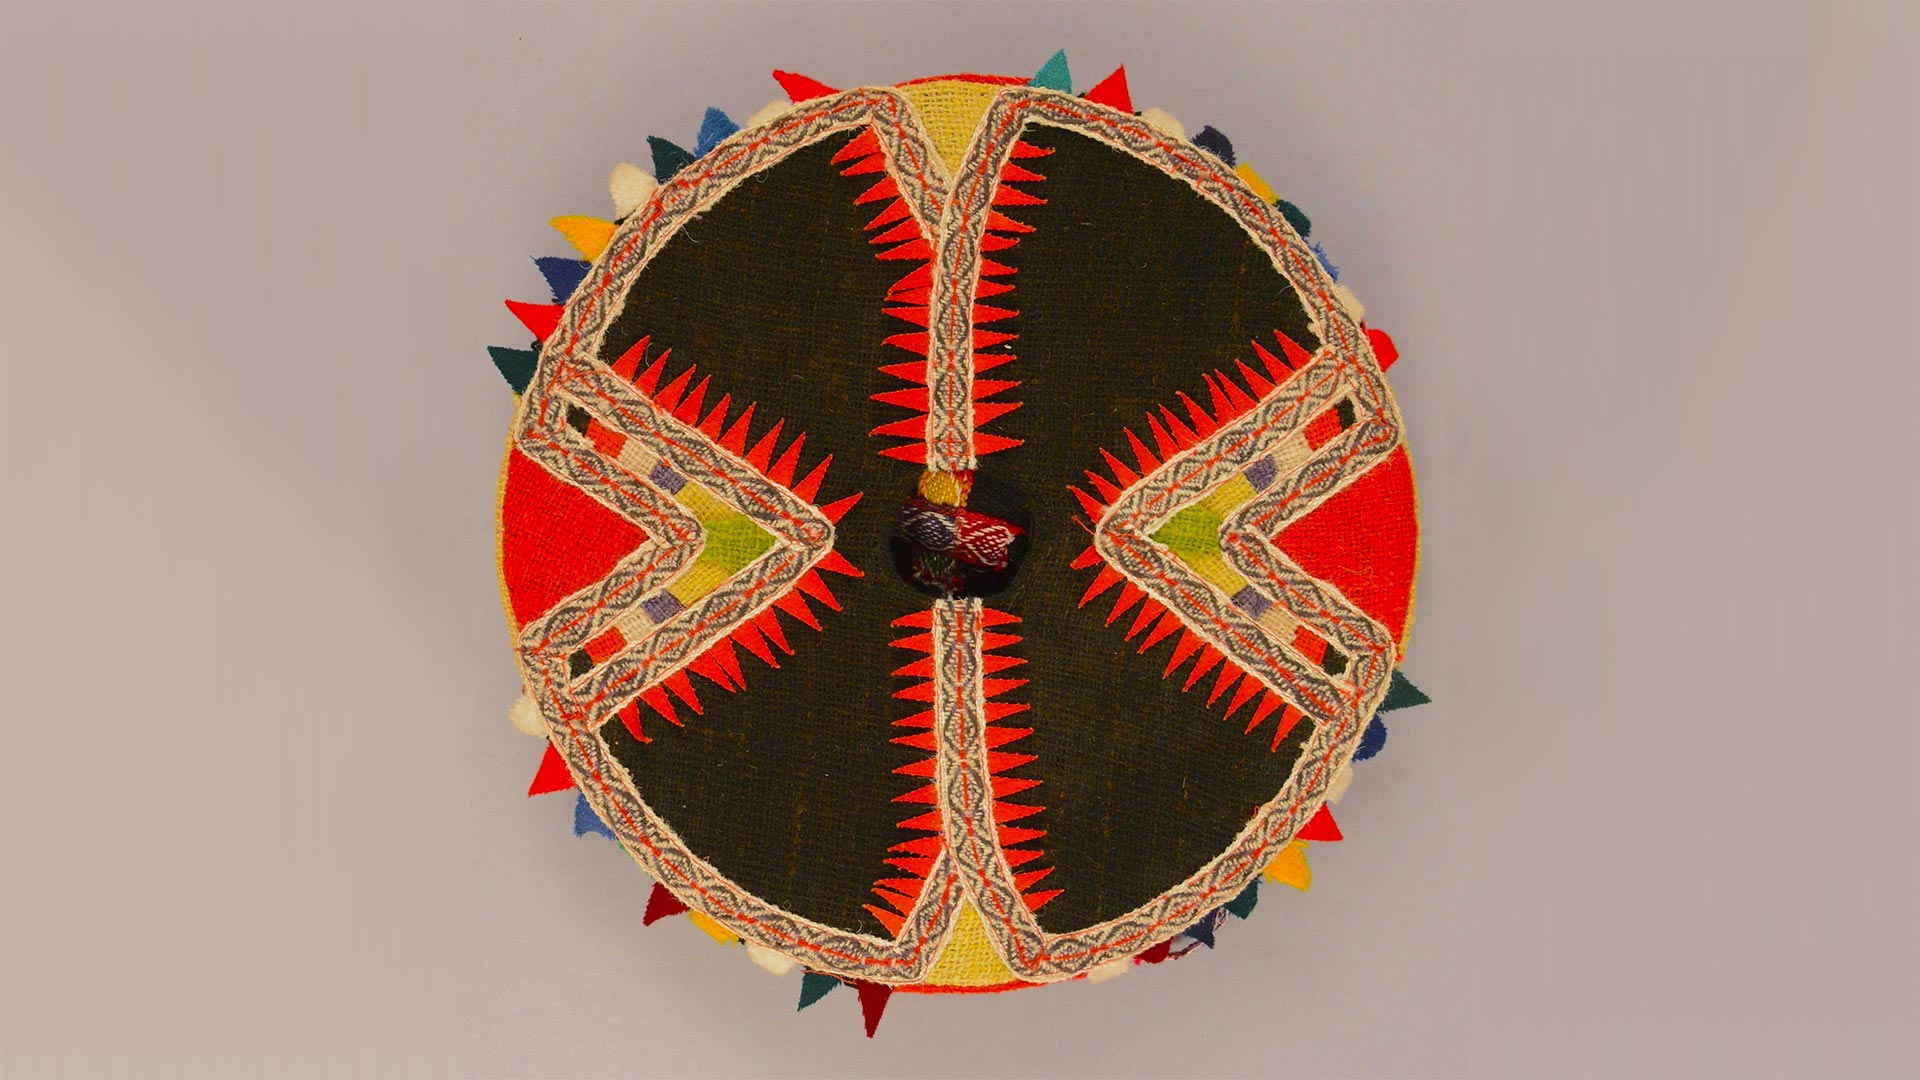 top view of a flat round woven hat with red and black pointy design